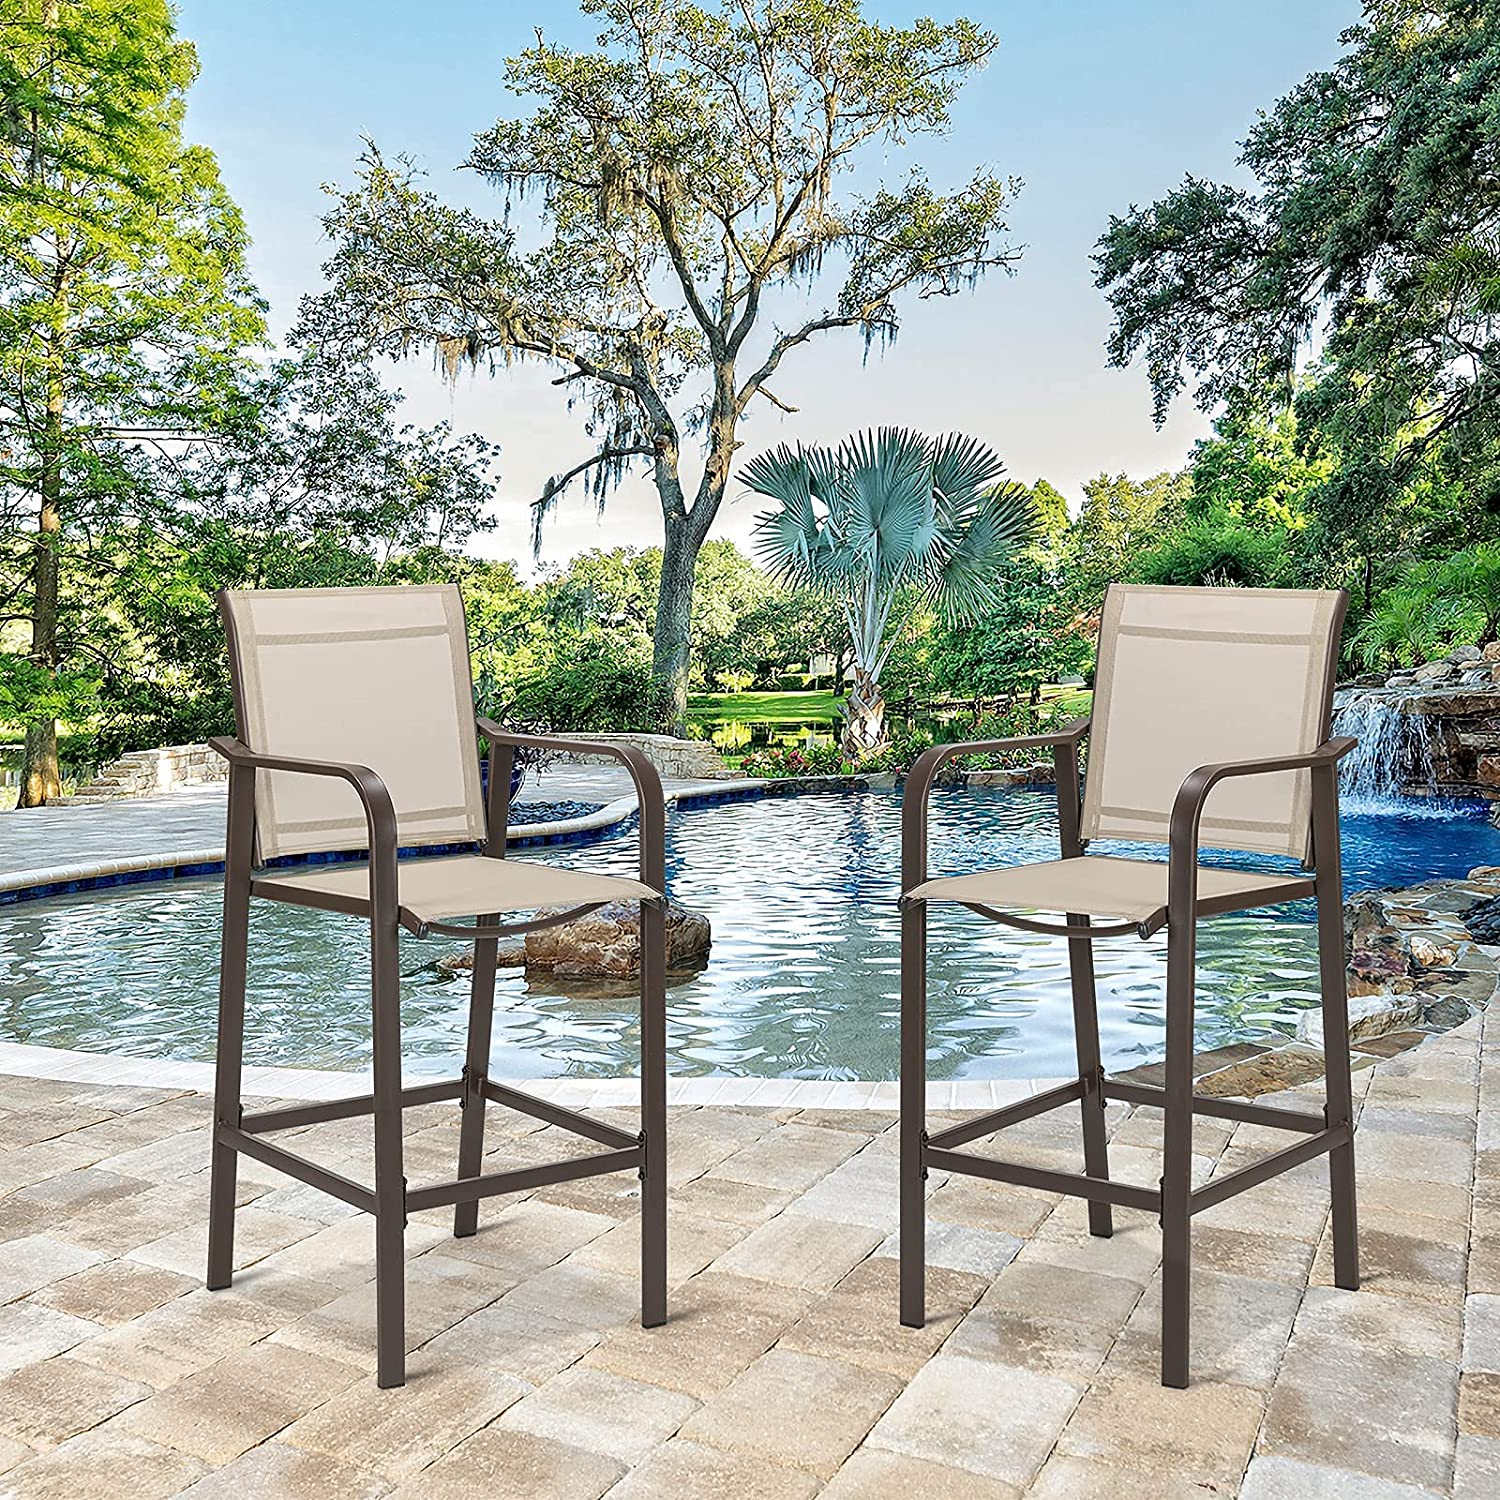 VINGLI Metal Patio Bar Stools Set Counter Clearance SALE! Limited time! Weather of Heig Columbus Mall 2 All